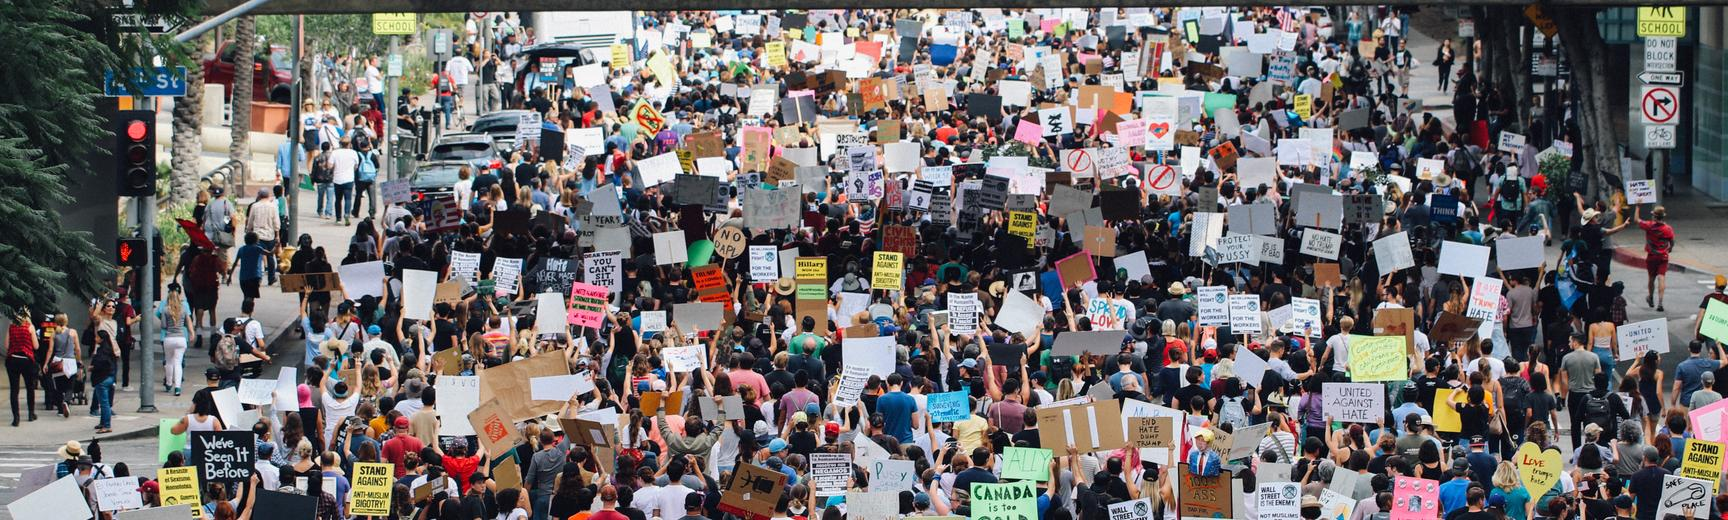 aerial view of large march, crowd holding placards